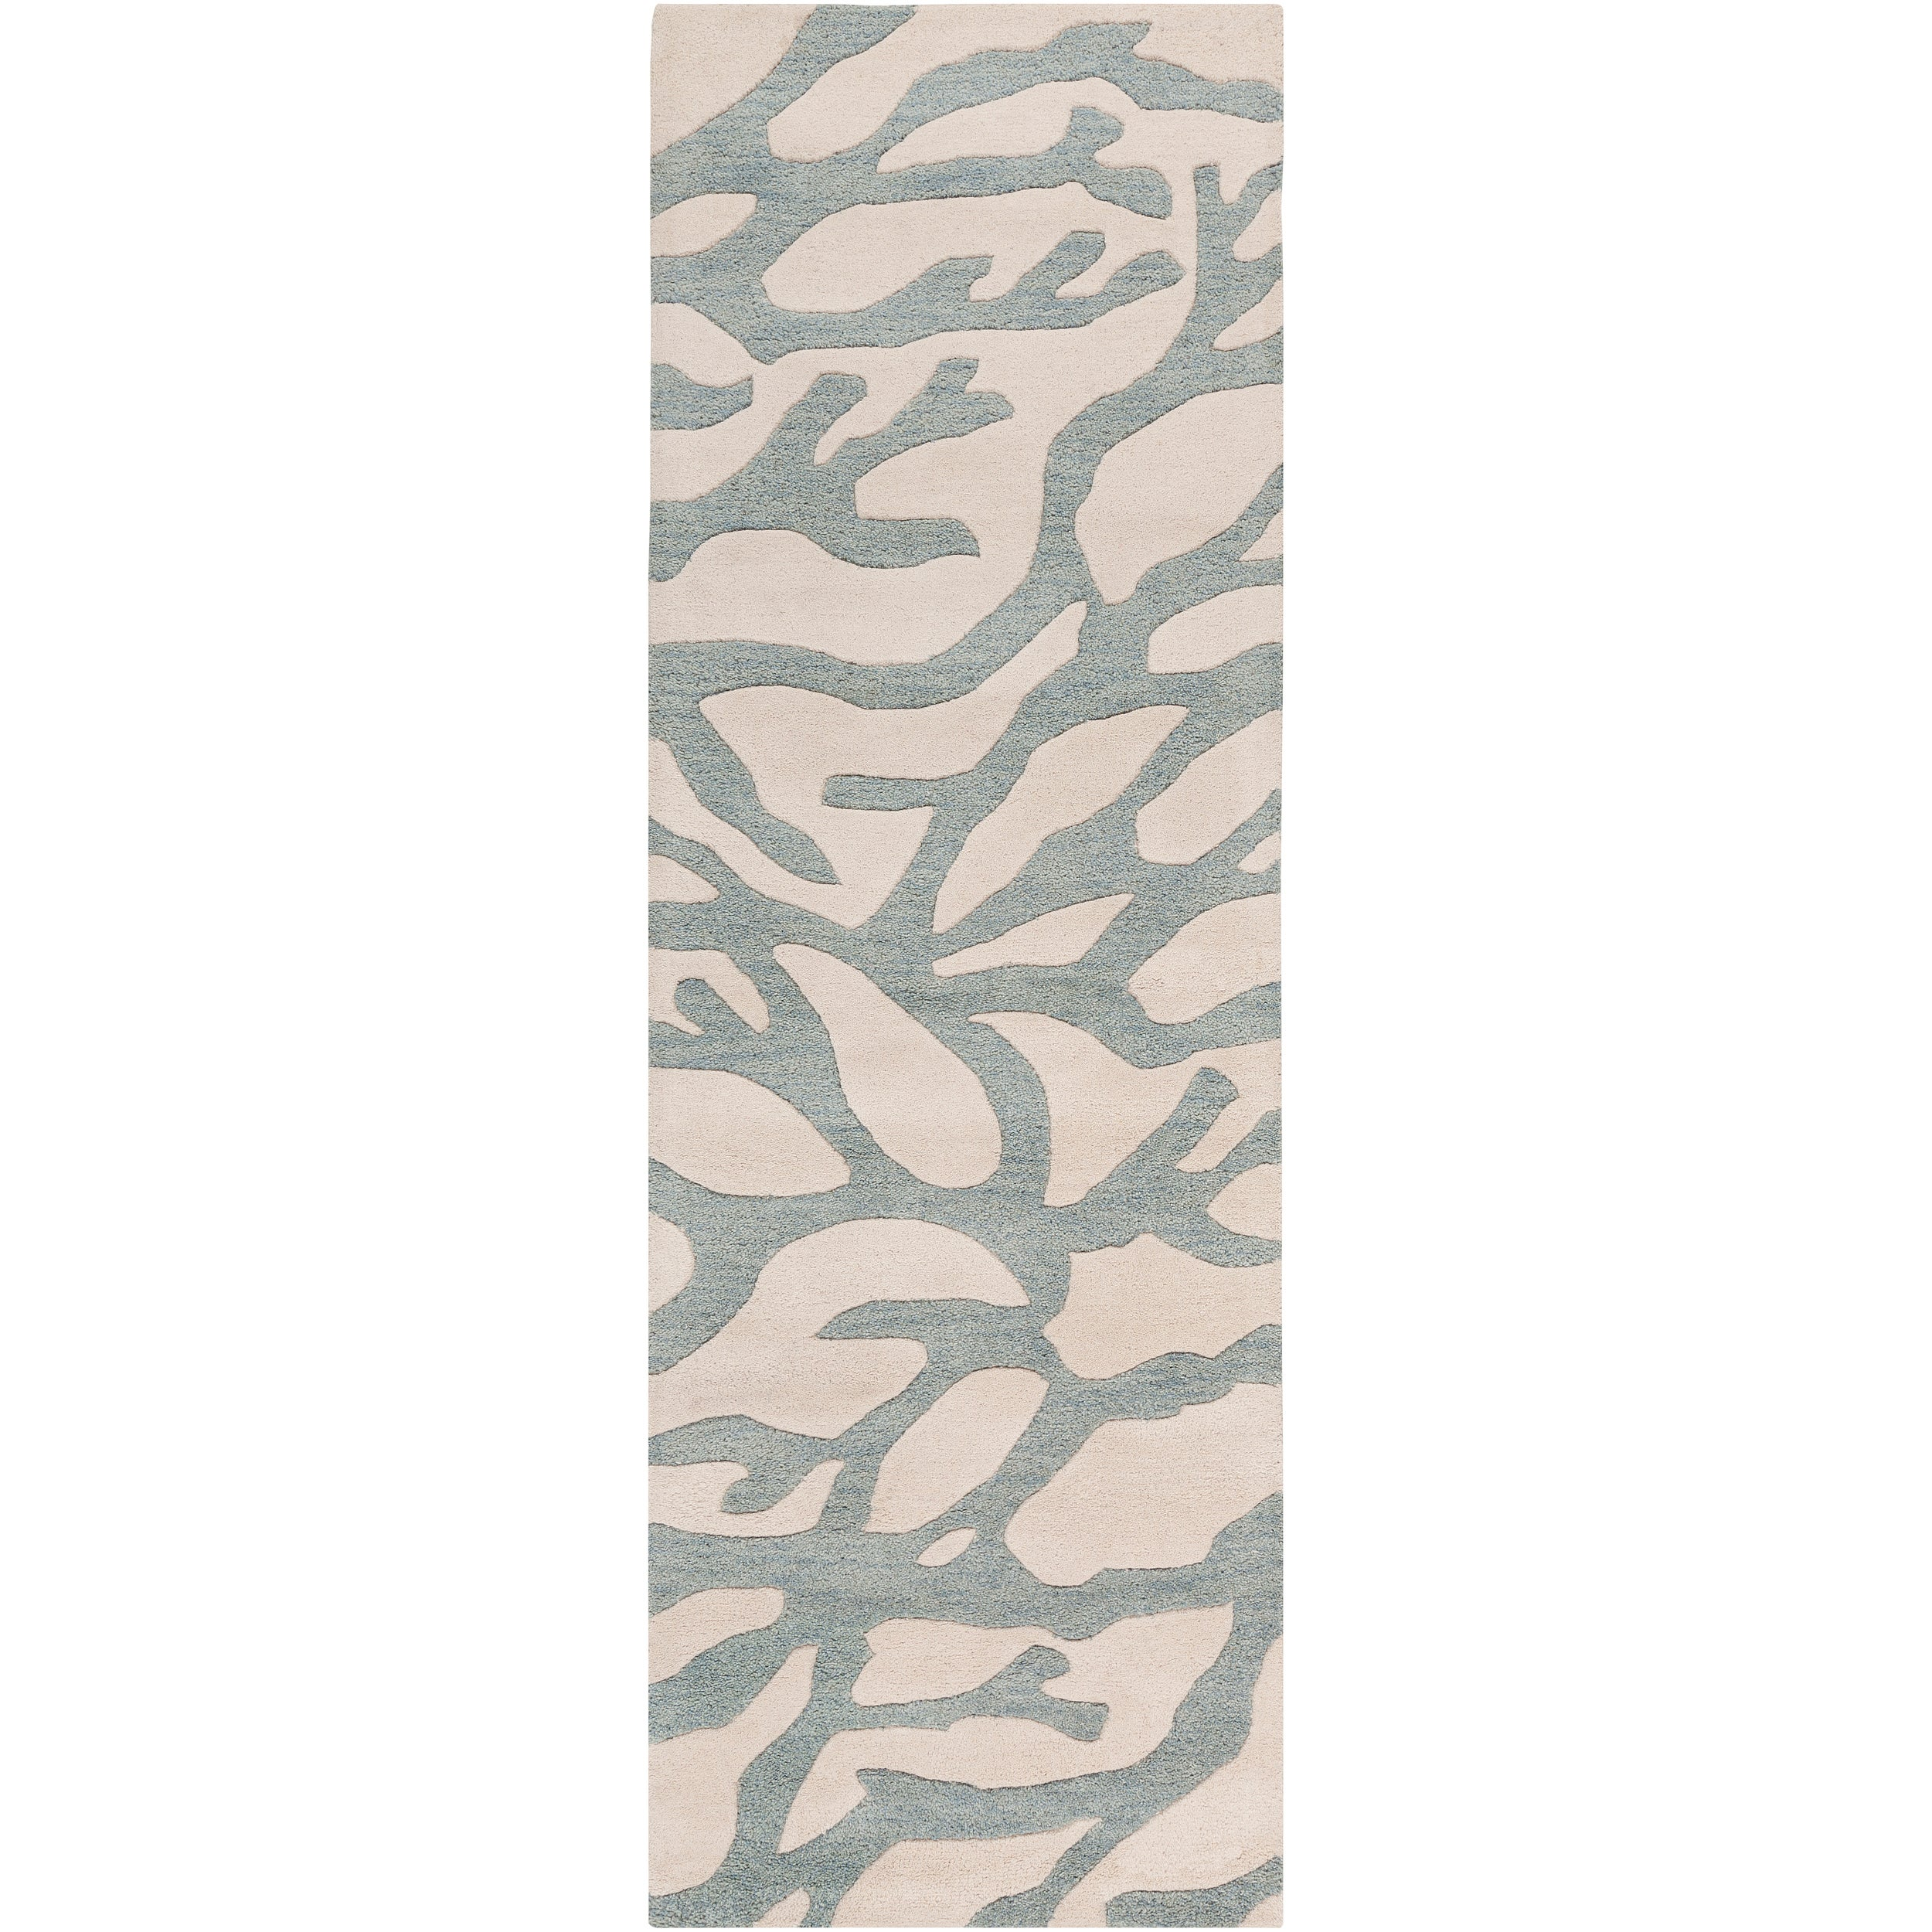 Somerset Bay Hand-Tufted Bacelot Bay Blue Beach Inspired Abstract Wool Rug (2'6 x 8')